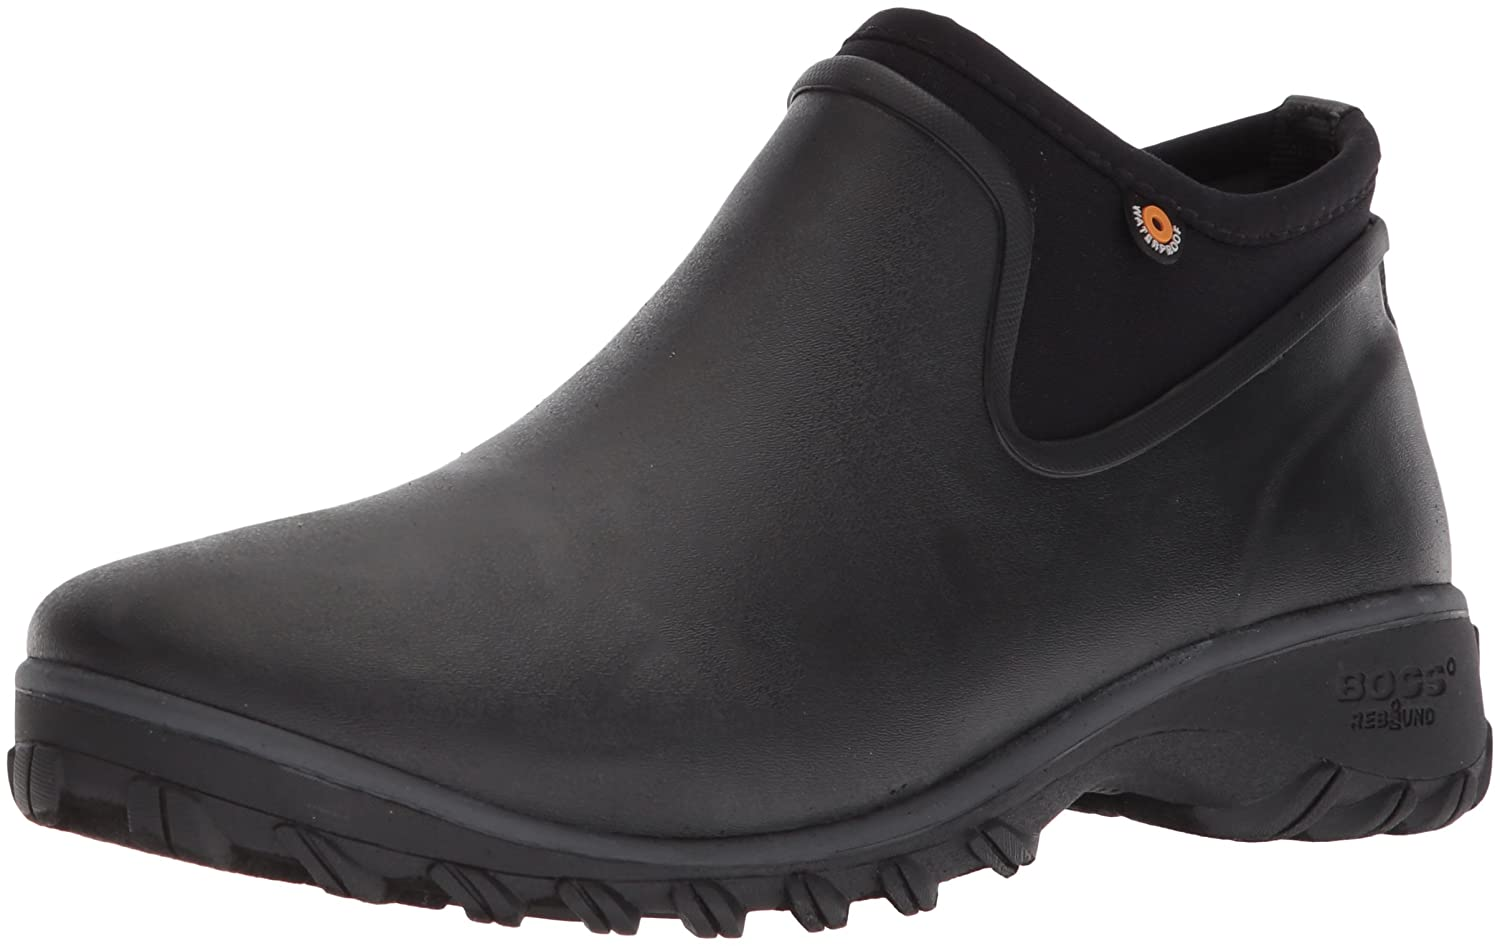 BOGS Women's SAUVIE Chelsea Rain Boot